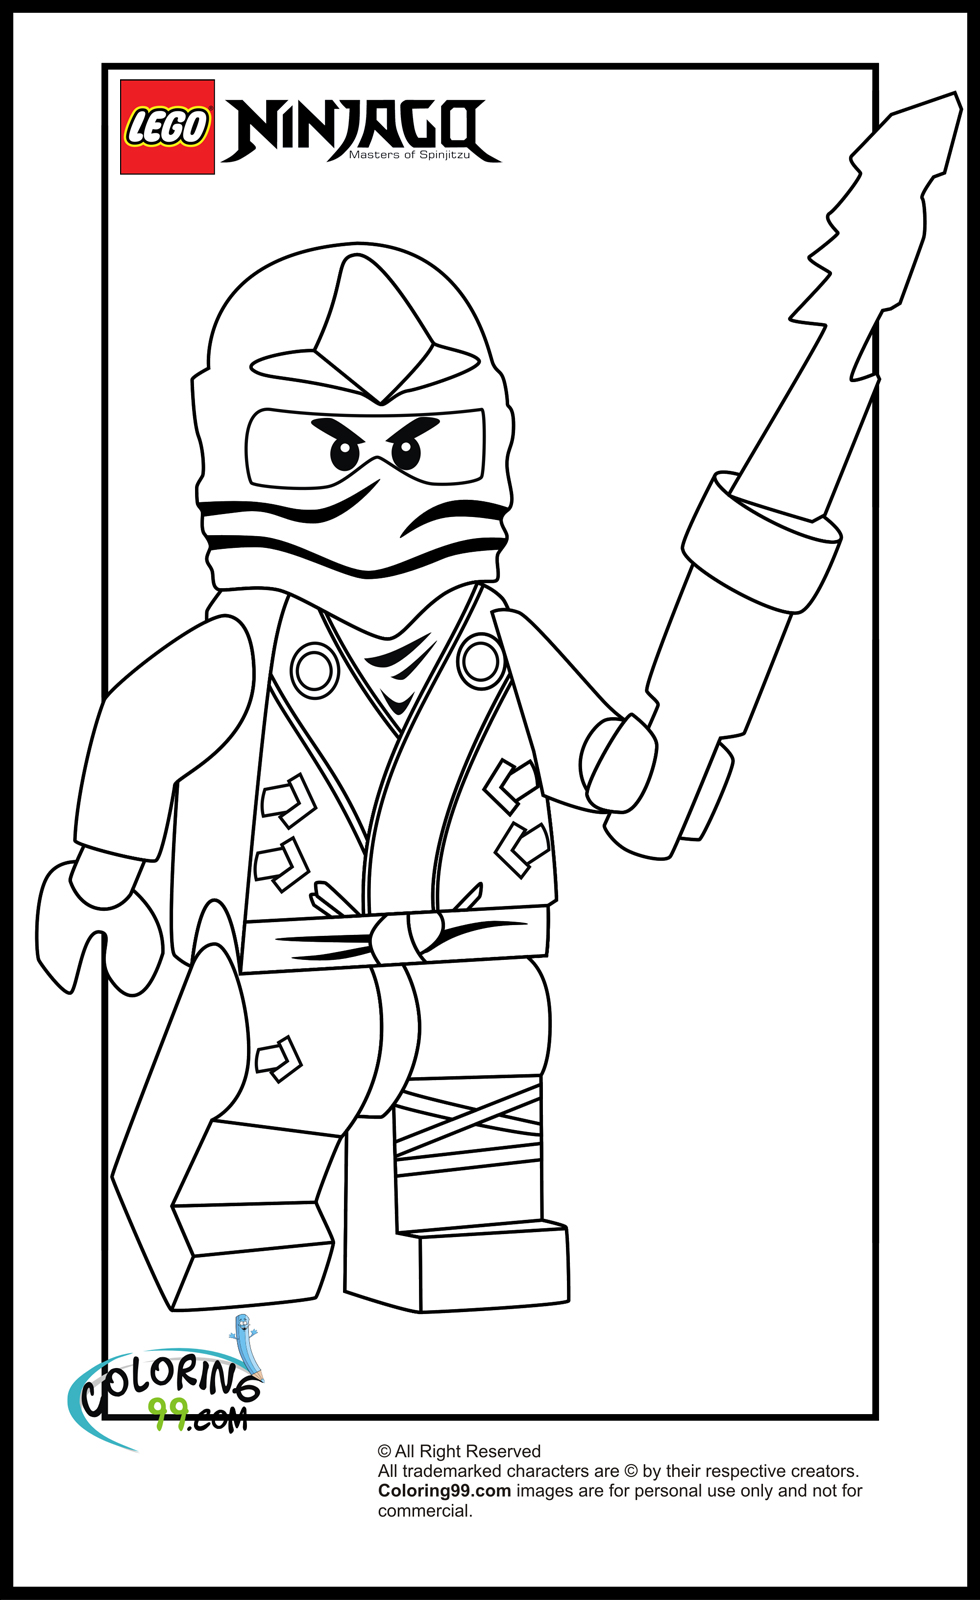 lego ninjago zane coloring pages | minister coloring